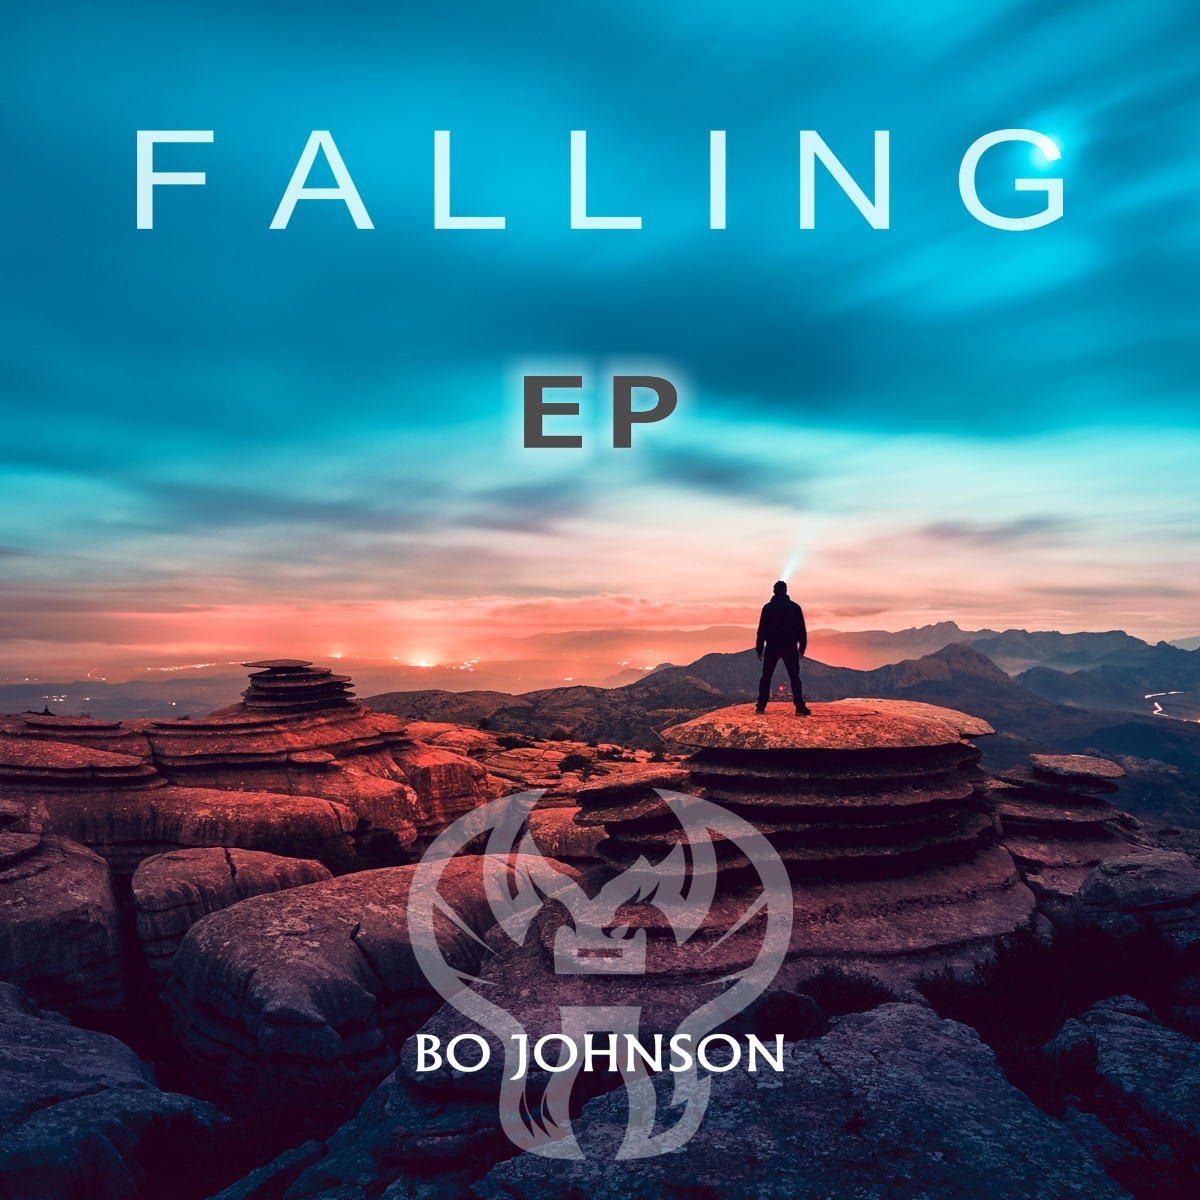 Bo Johnson is the World's Latest Soulful Electronic and Dance Sensation